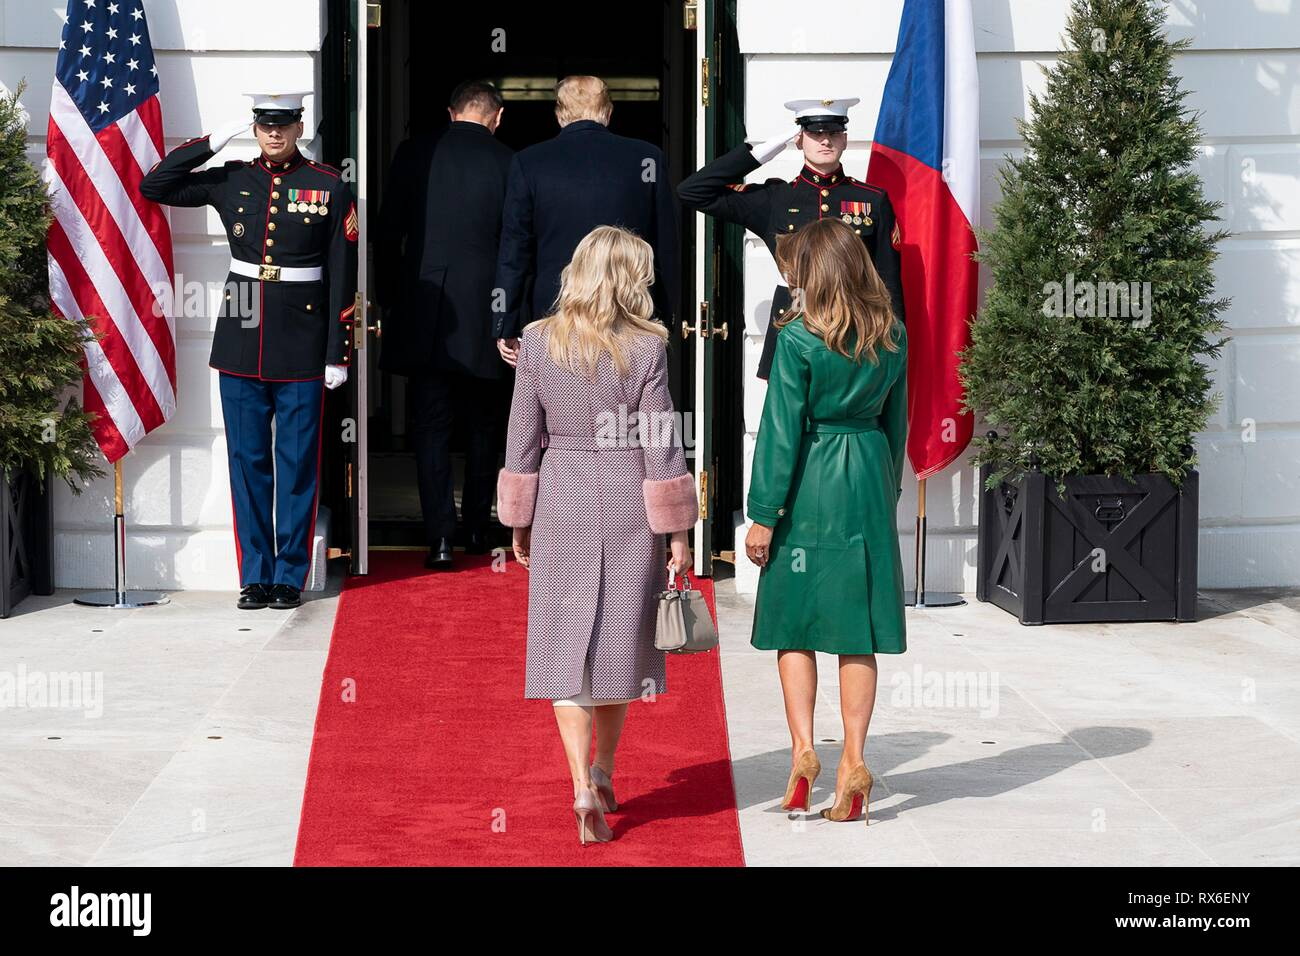 U.S President Donald Trump walks with Czech Prime Minister Andrej Babis and his wife Monika Babisova and First Lady Melania Trump chat during the arrival ceremony at the White House March 7, 2019 in Washington, DC. - Stock Image